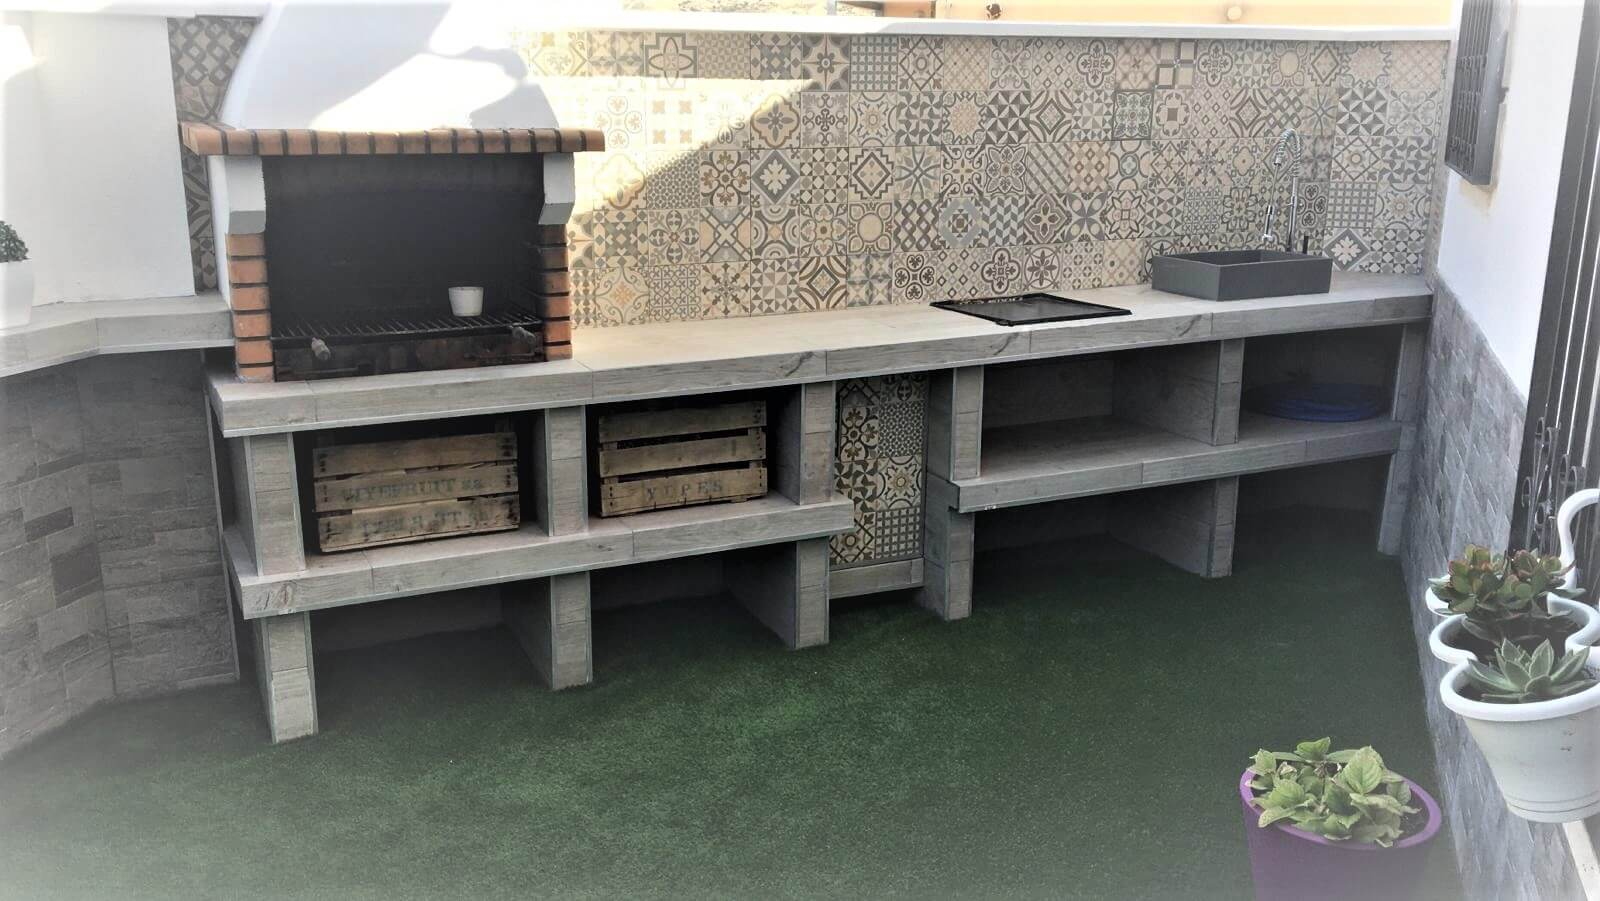 Patio in a private home with Gayafores' products